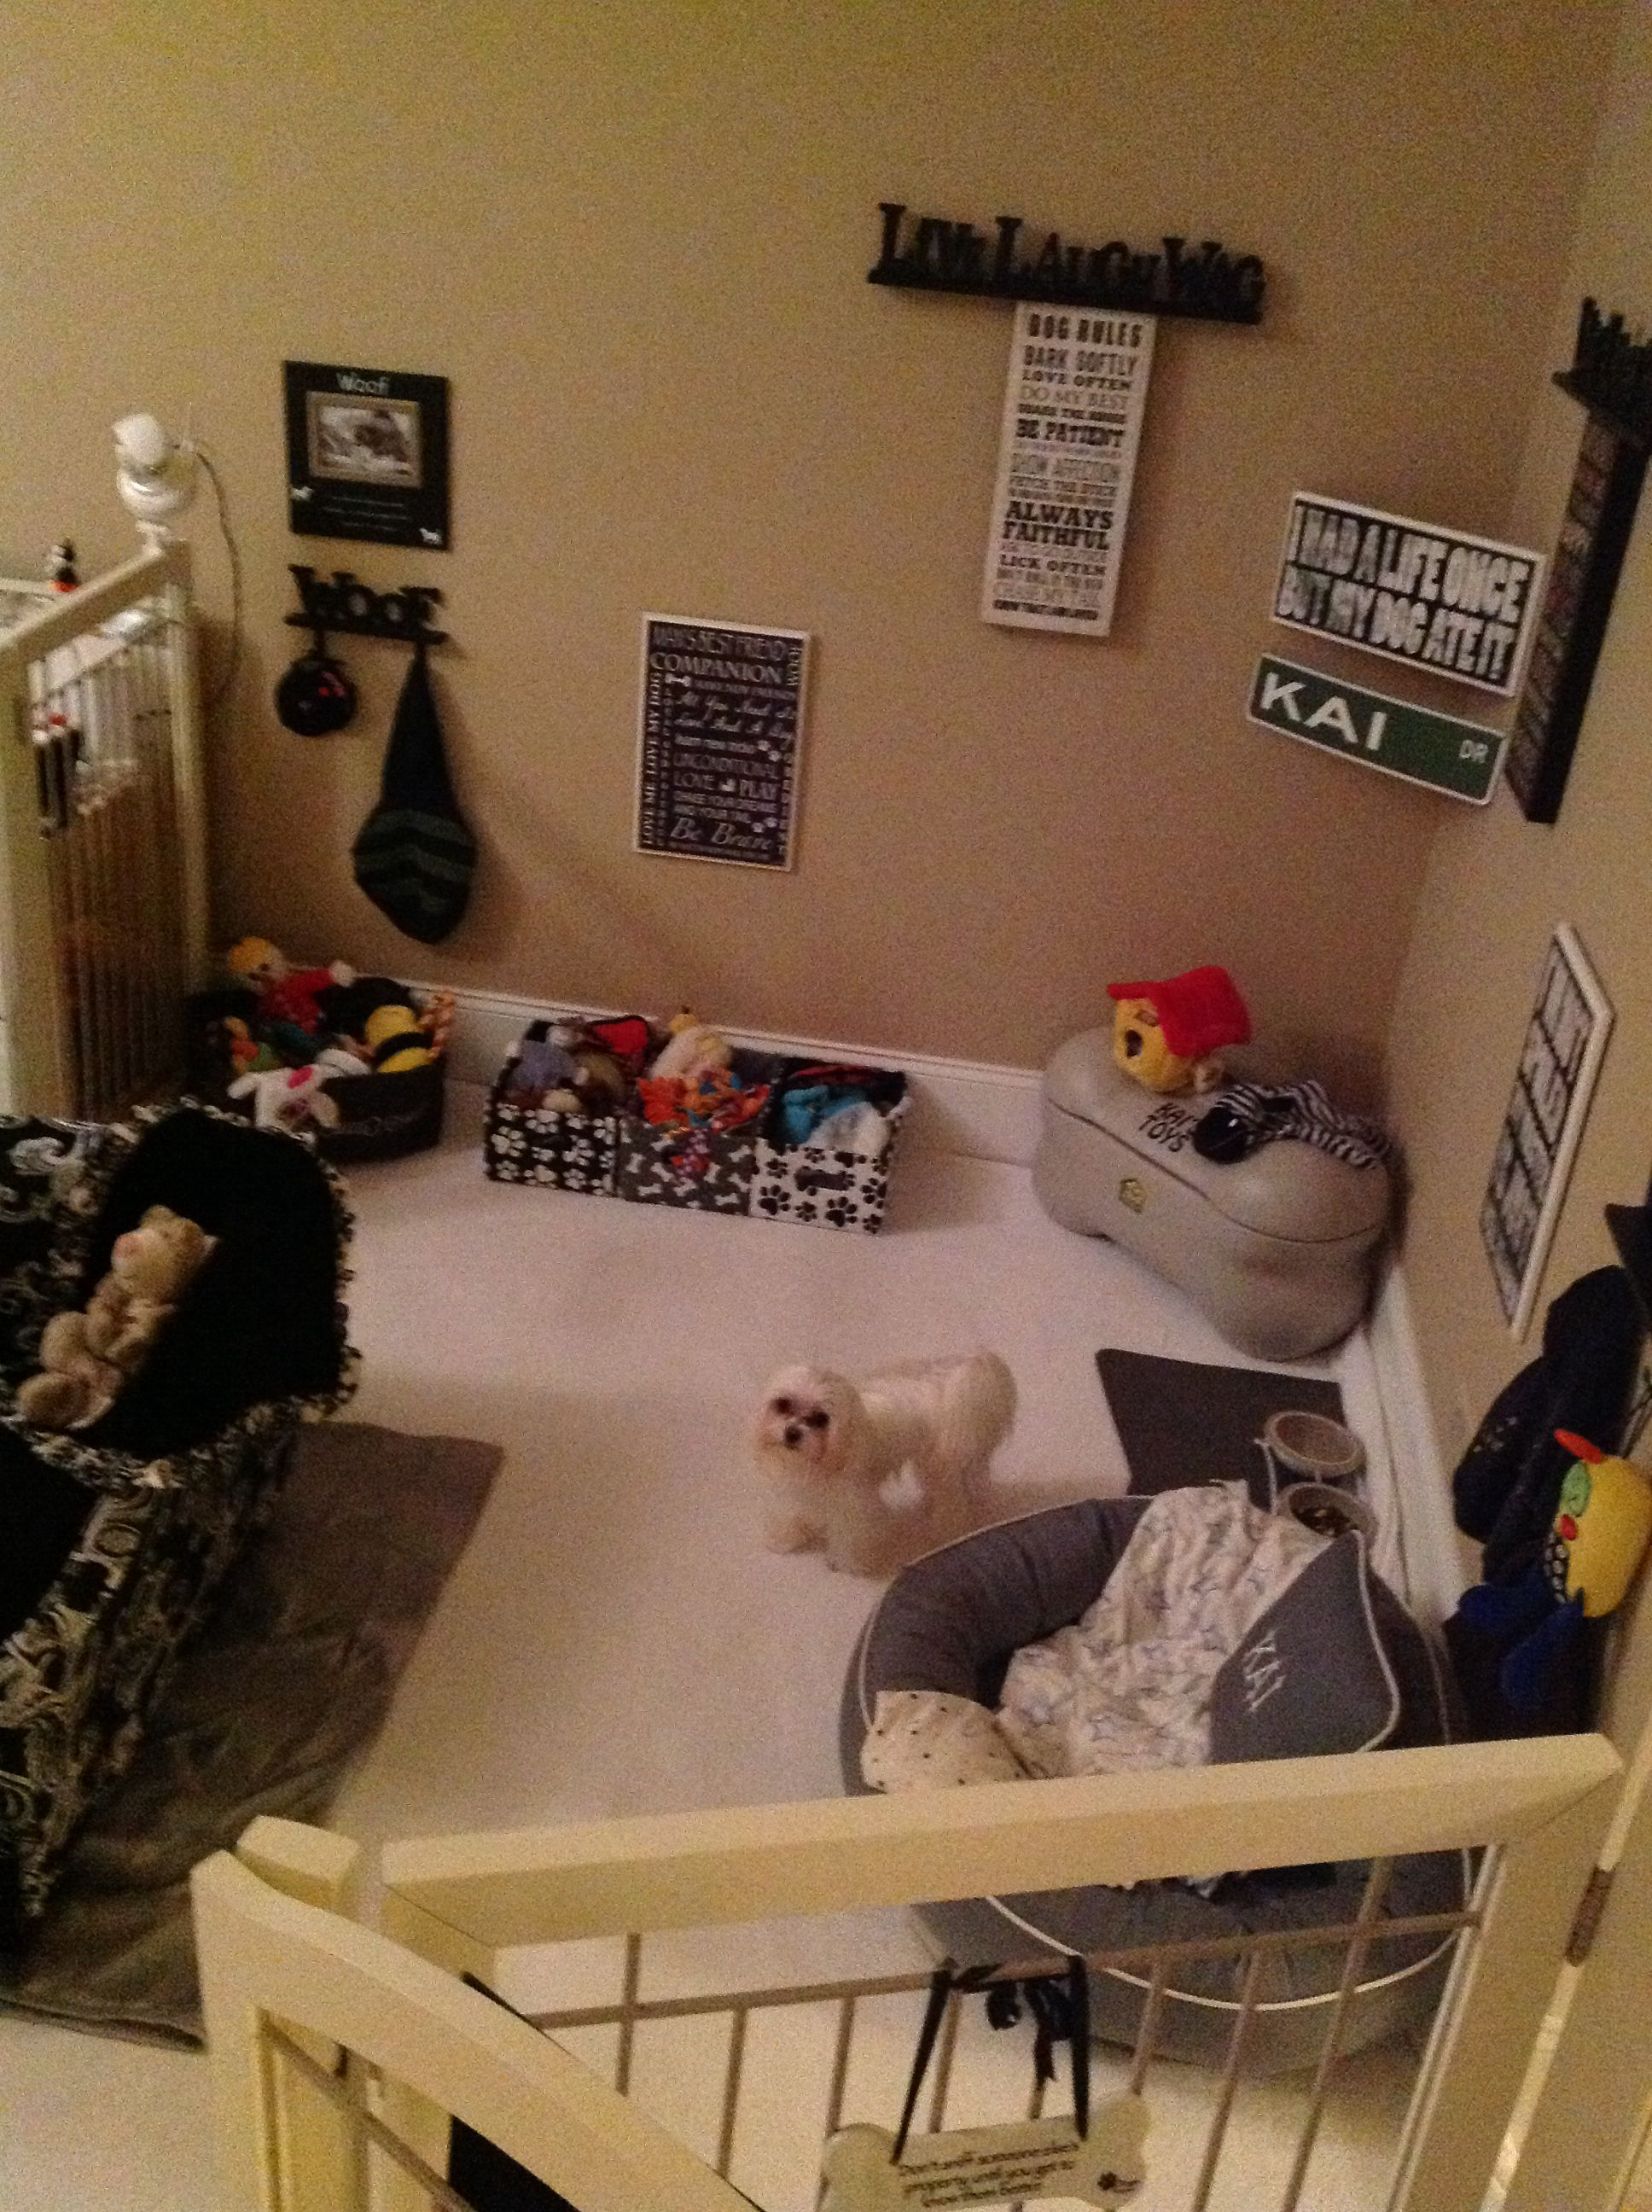 Kai S Dog Room And I Thought My Dogs Were Spoiled For